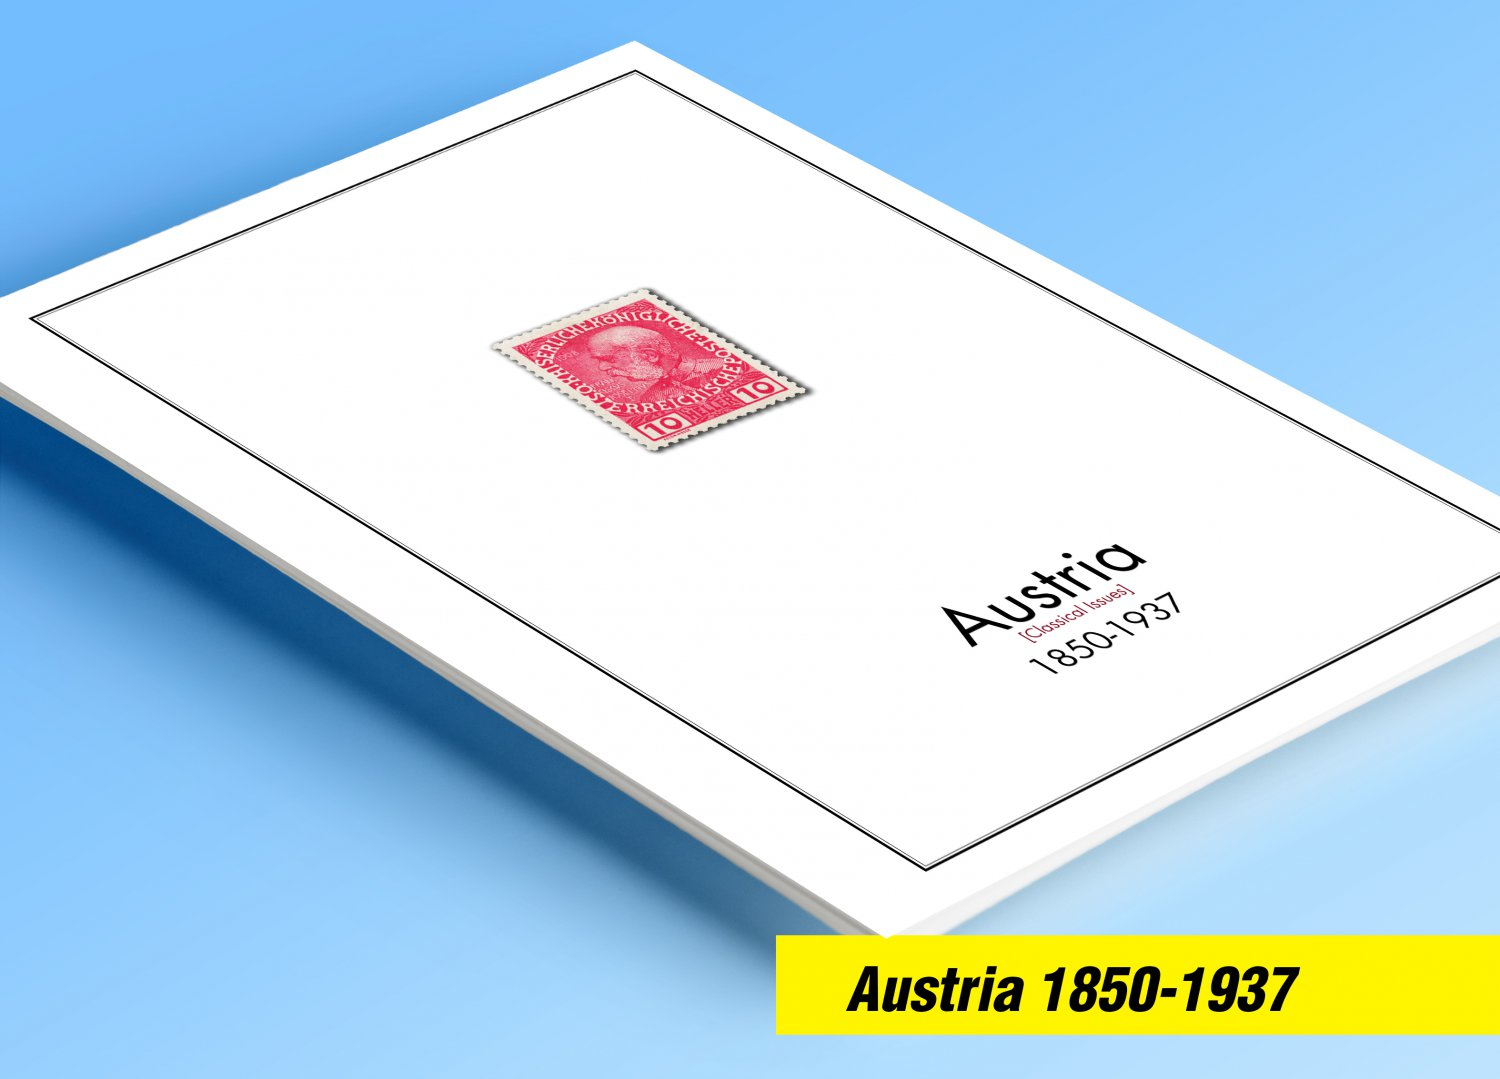 COLOR PRINTED AUSTRIA [CLASS] 1850-1937 STAMP ALBUM PAGES (53 illustrated pages)